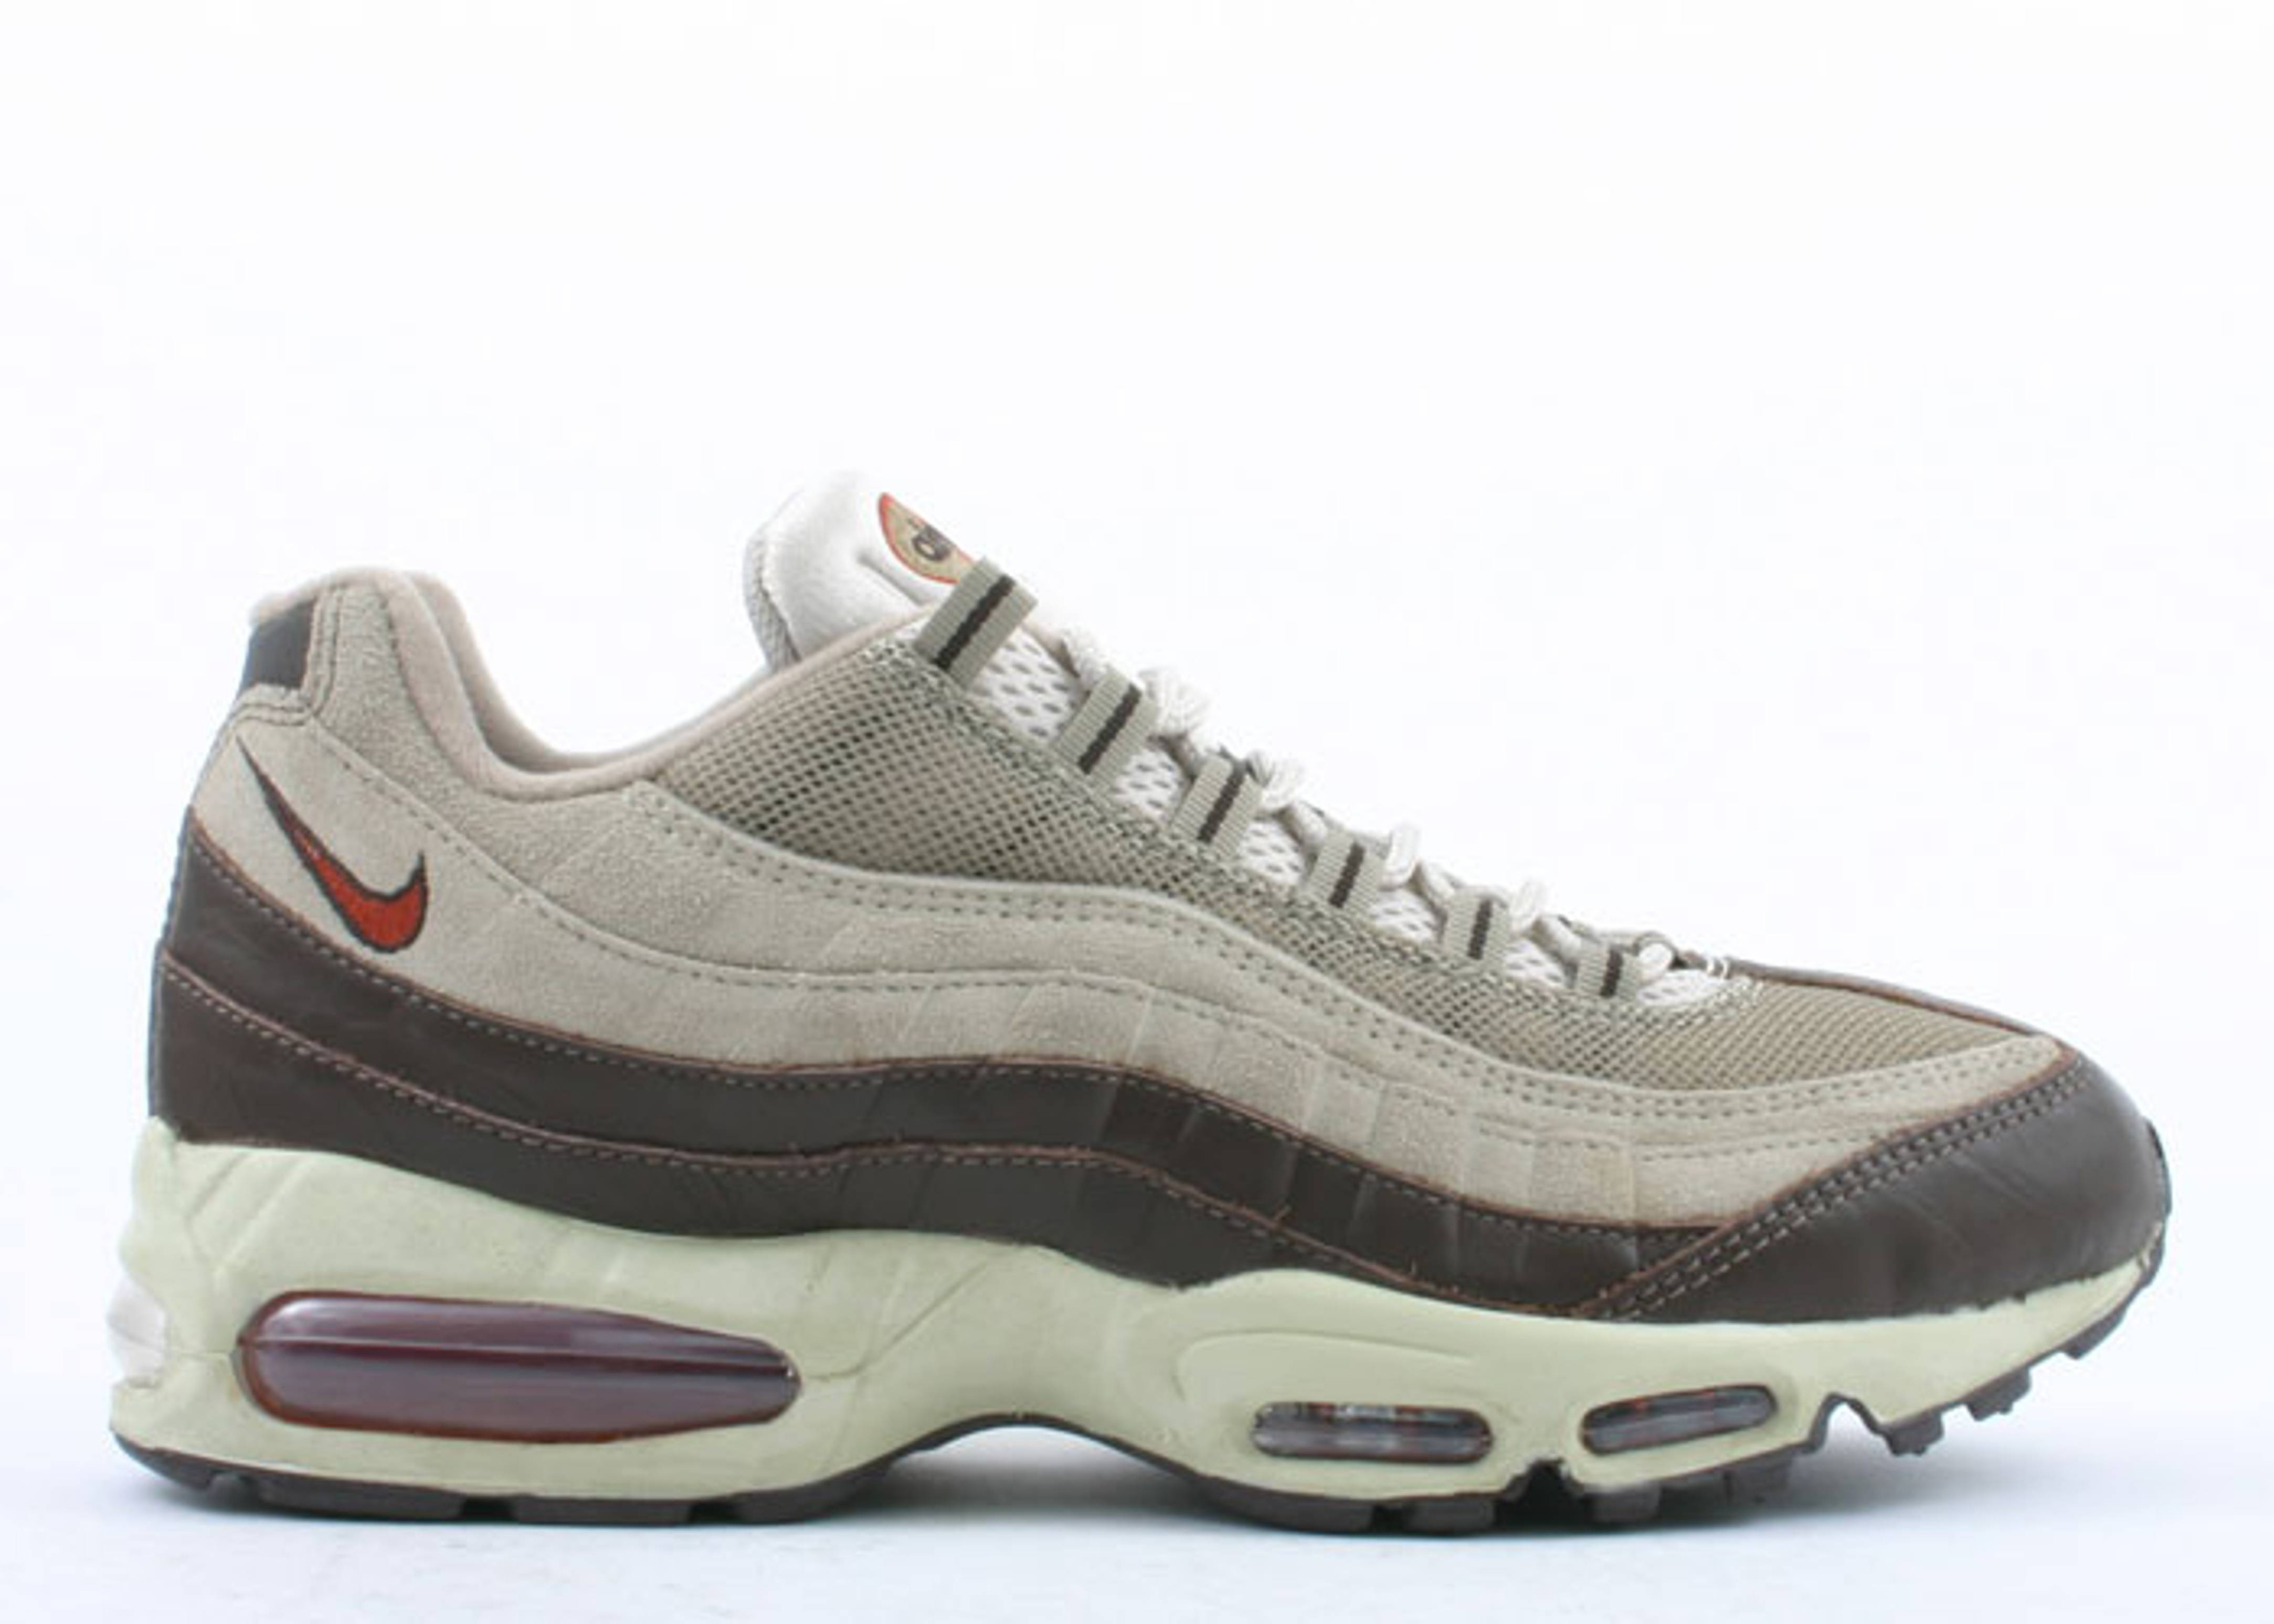 reputable site 2628b af7c1 reflector red 95 air max Nike ...